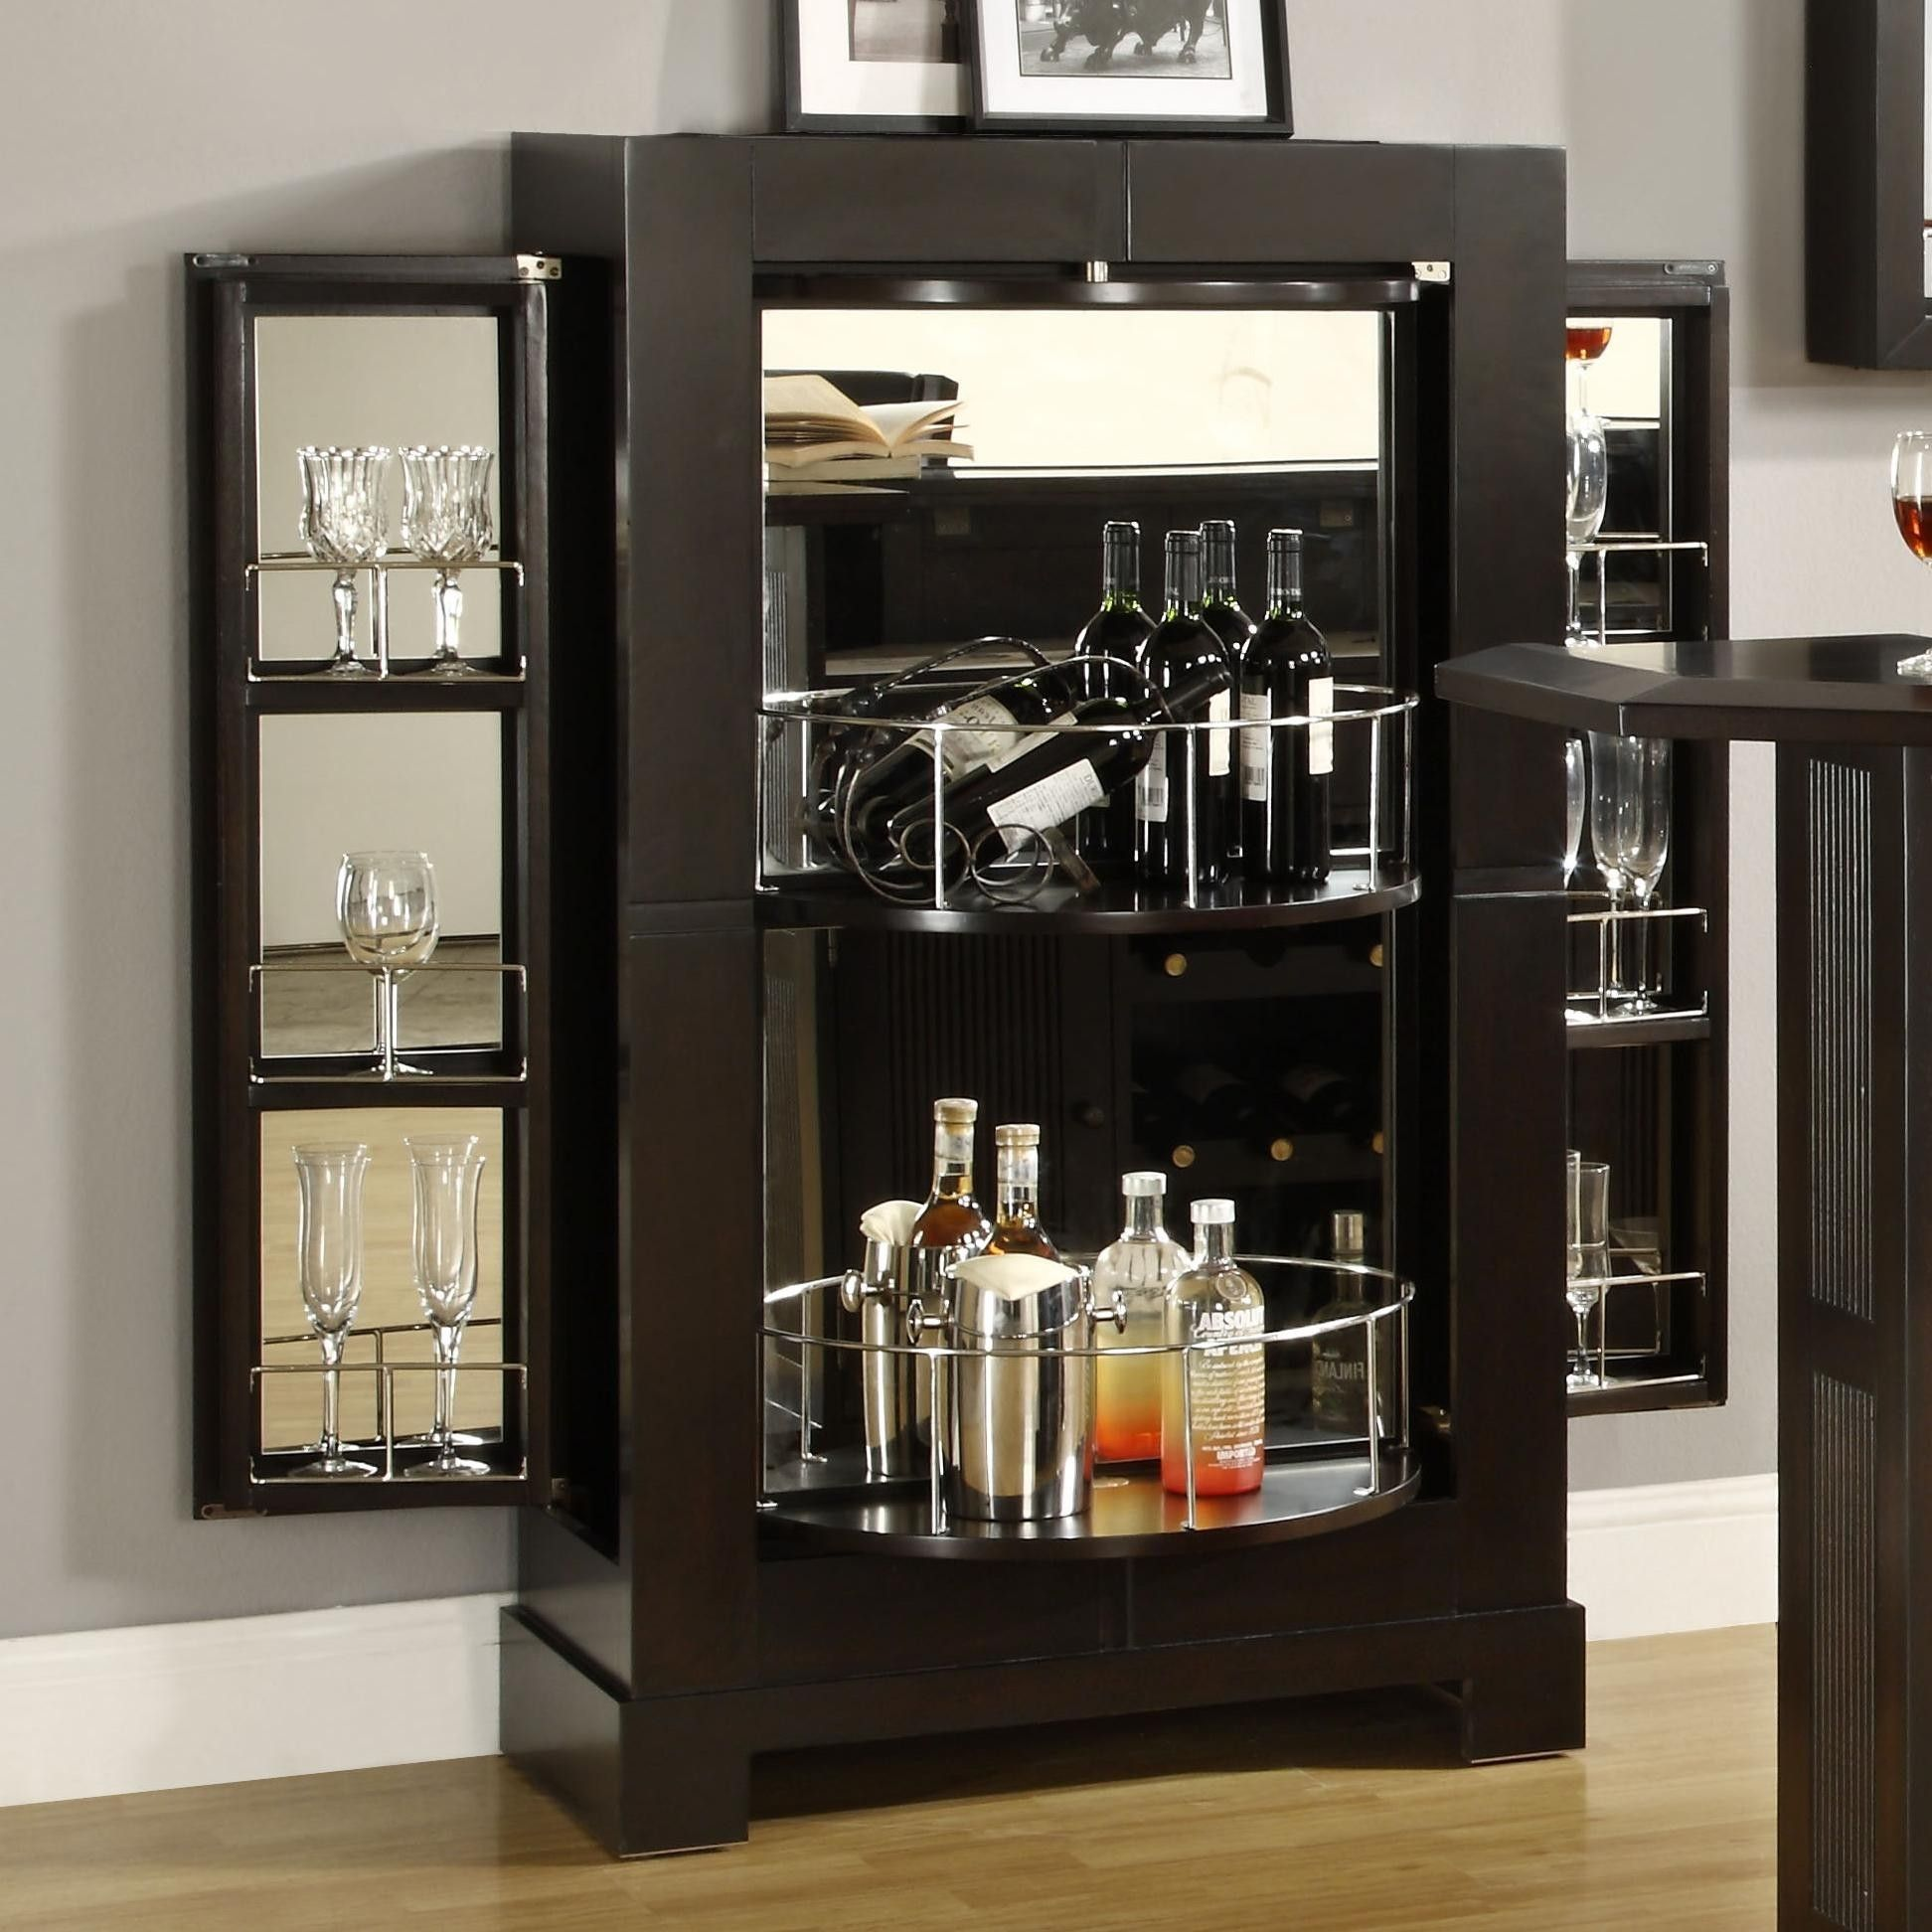 glass cabinet with glass shelves   Google Search. glass cabinet with glass shelves   Google Search   For the Home